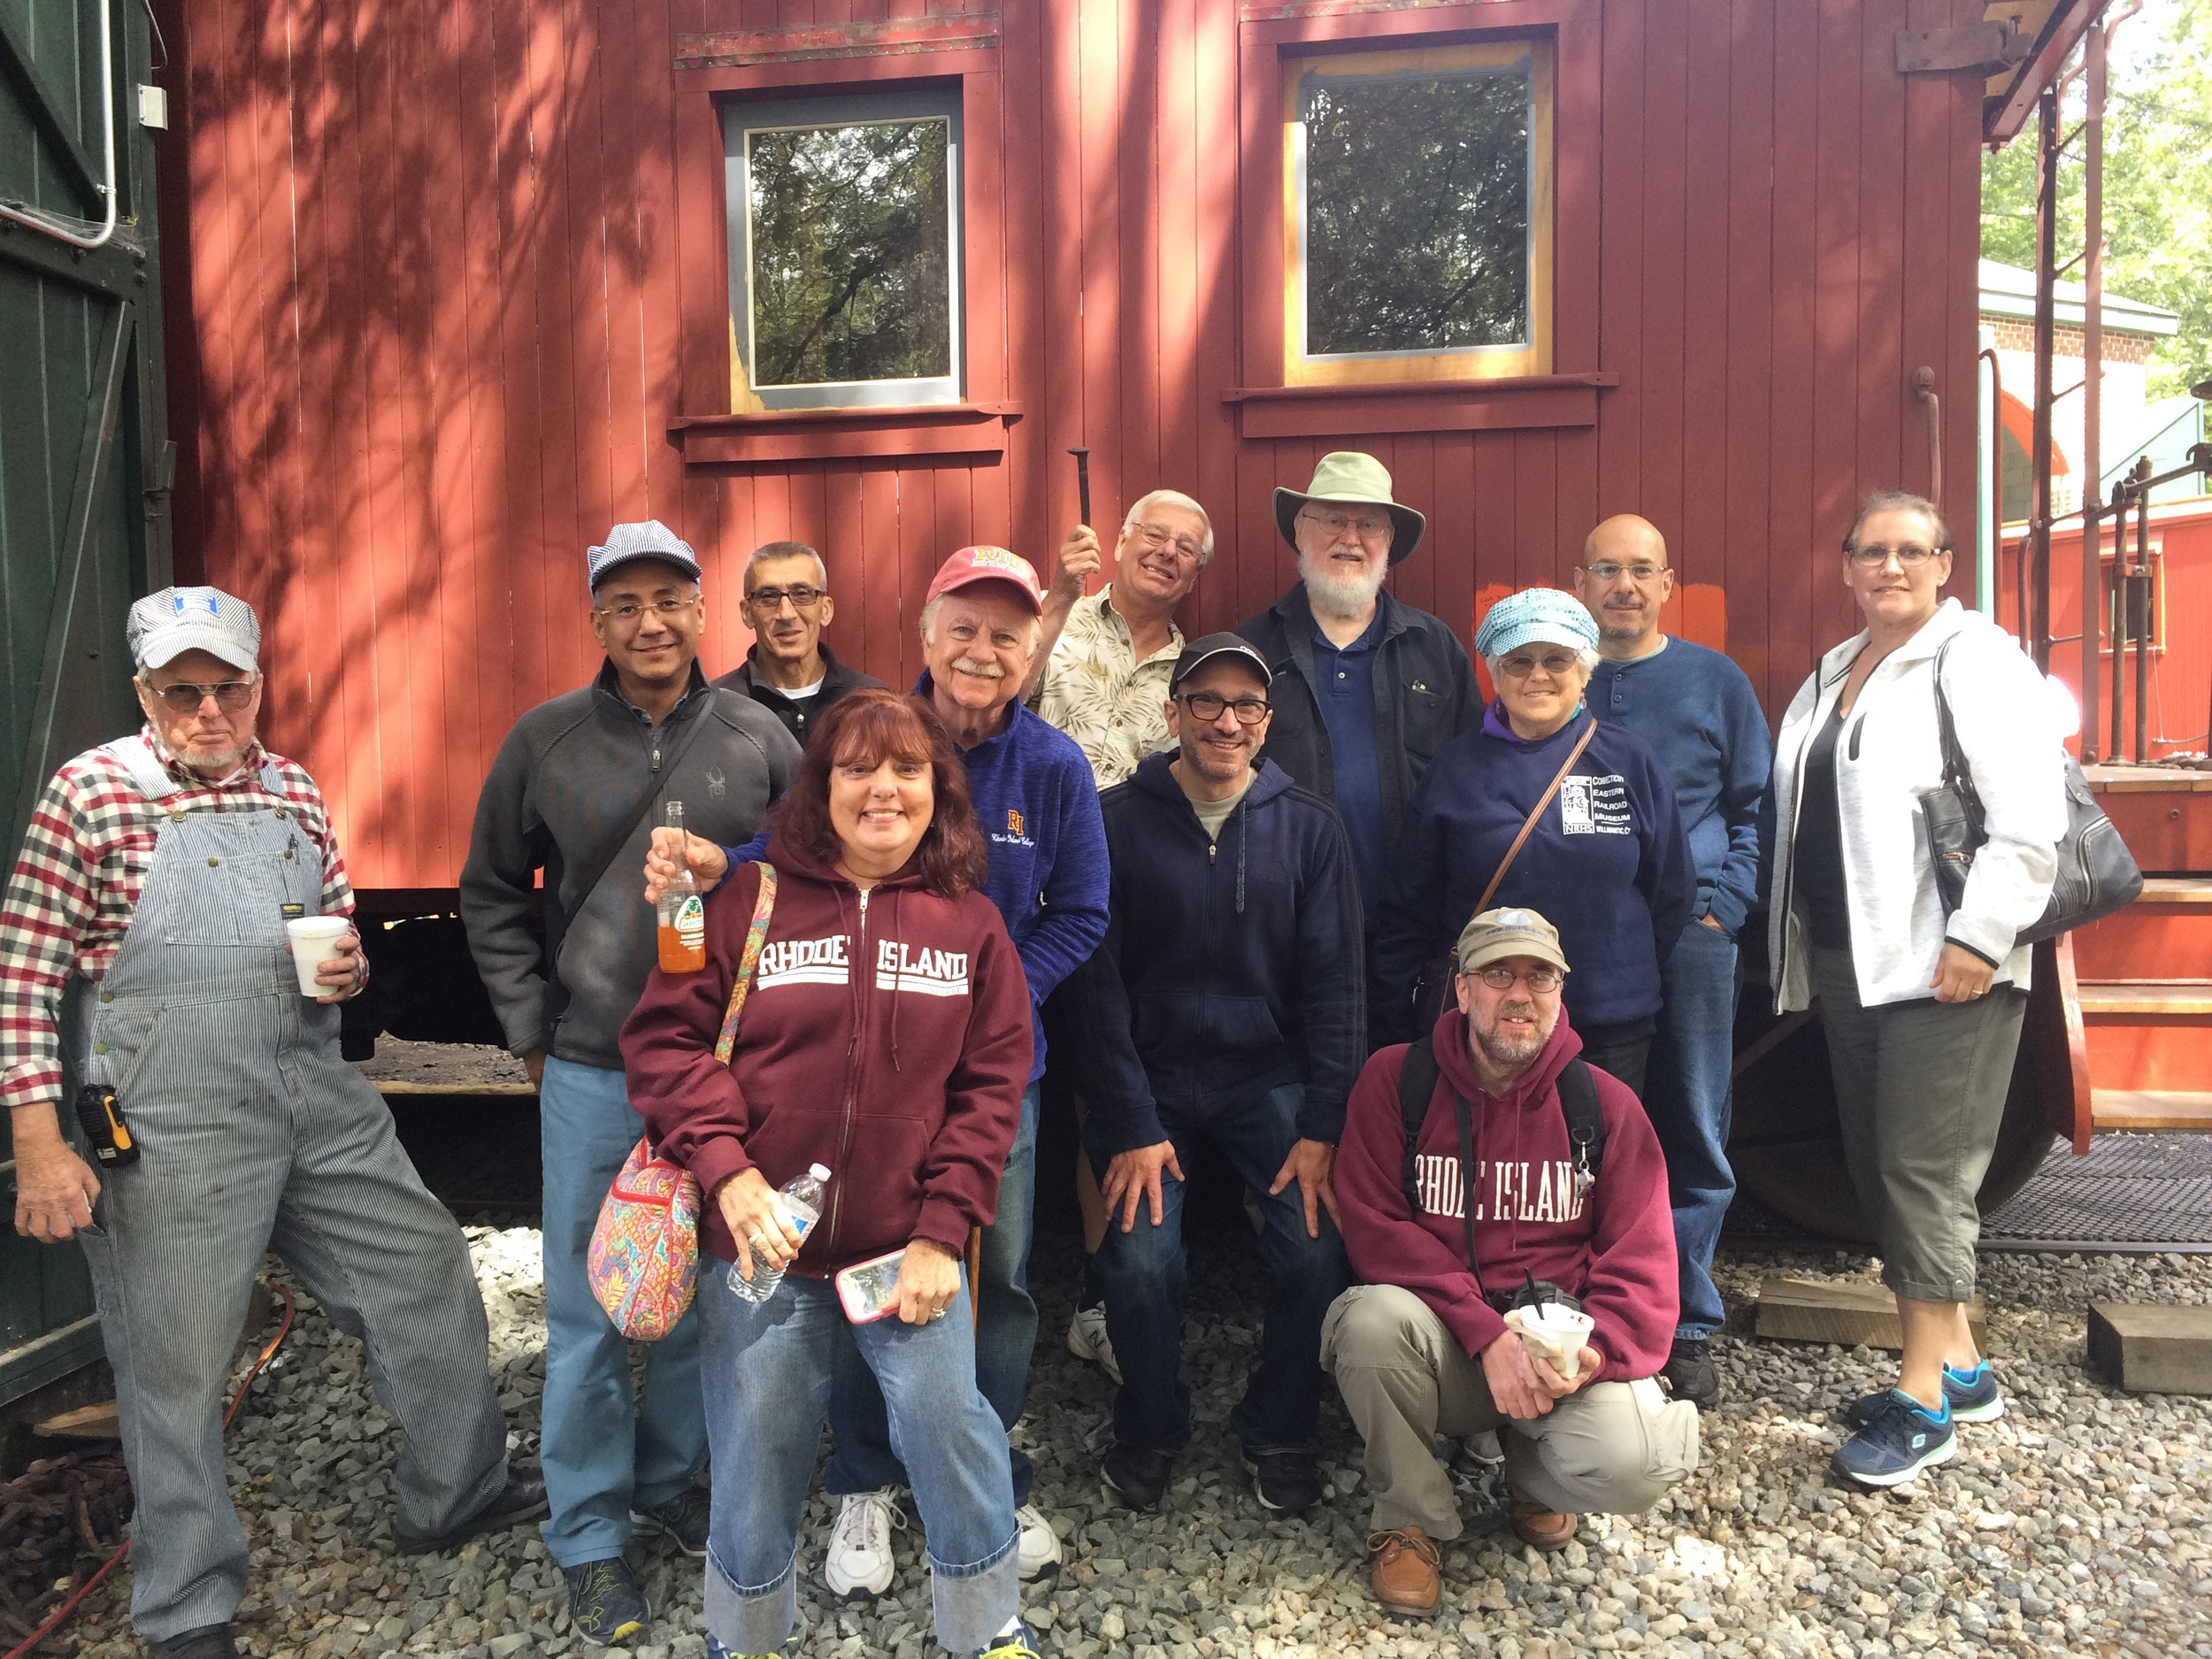 TRIP TAKERS: These are the Johnston Historical Society members who took a unique field trip Saturday – which was postponed from its actual date in May – to the Eastern Railroad Museum in Willimantic, Conn.